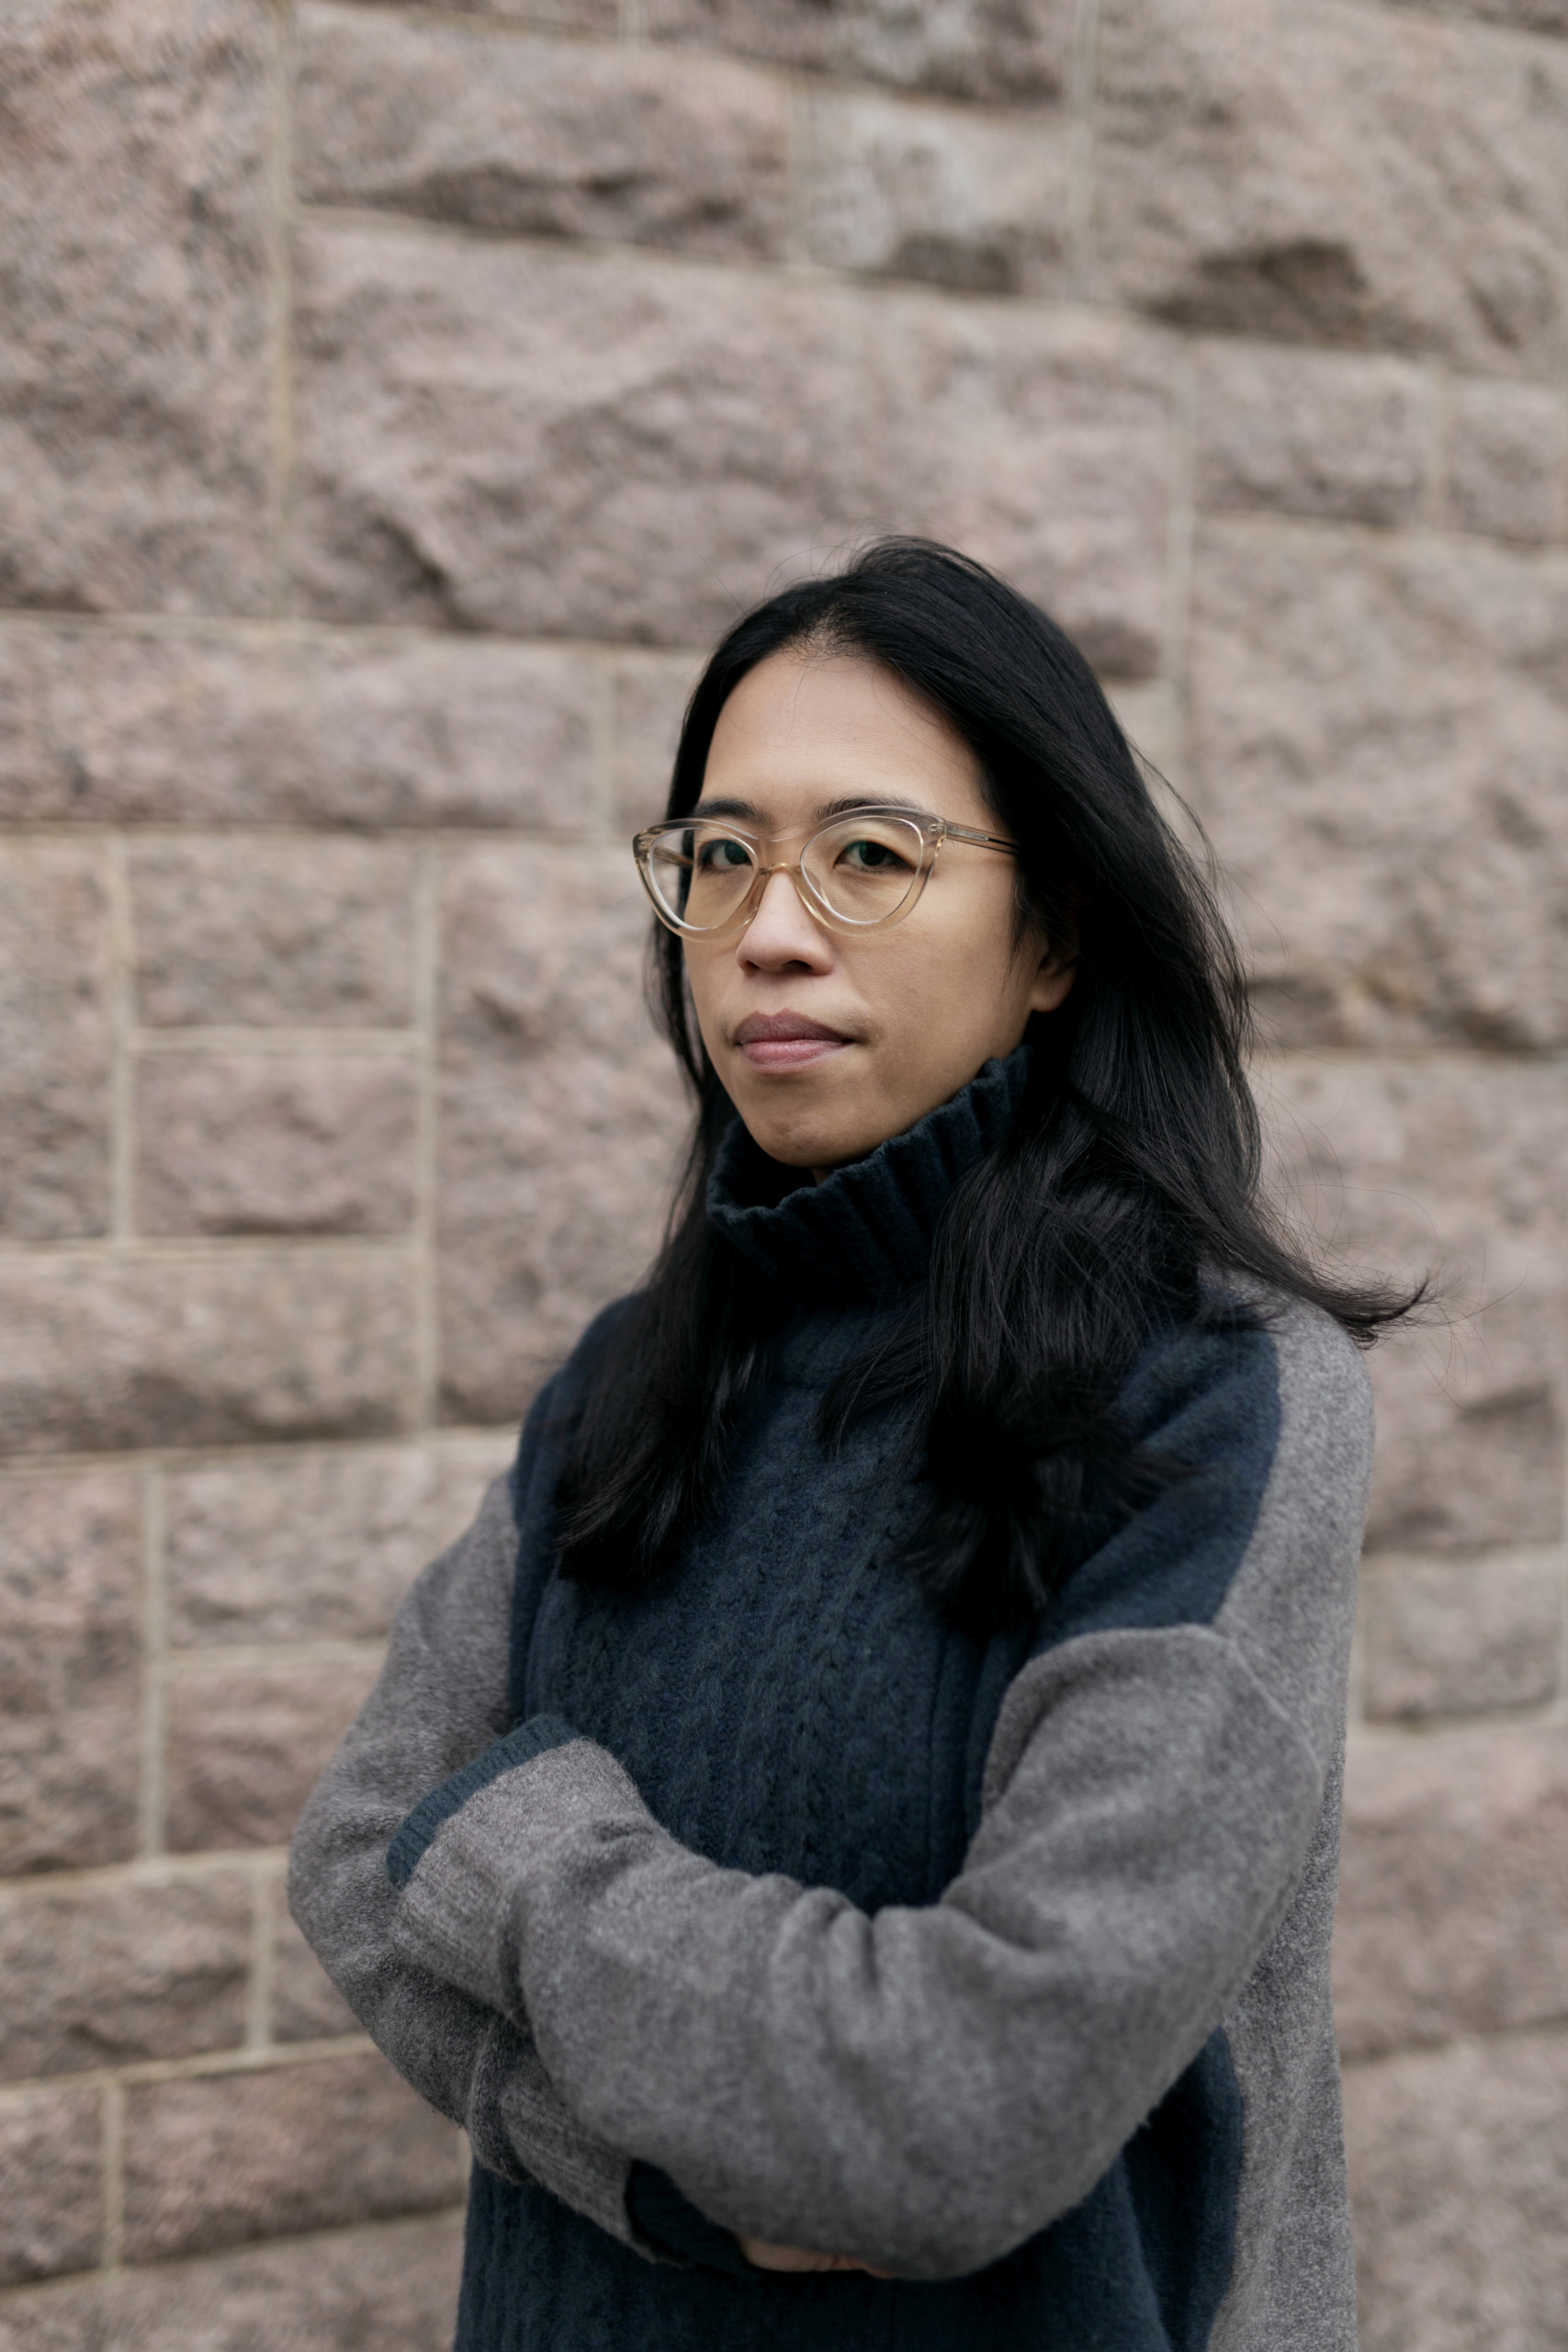 Portrait of Christina Li. She is subtly smiling to the camera.